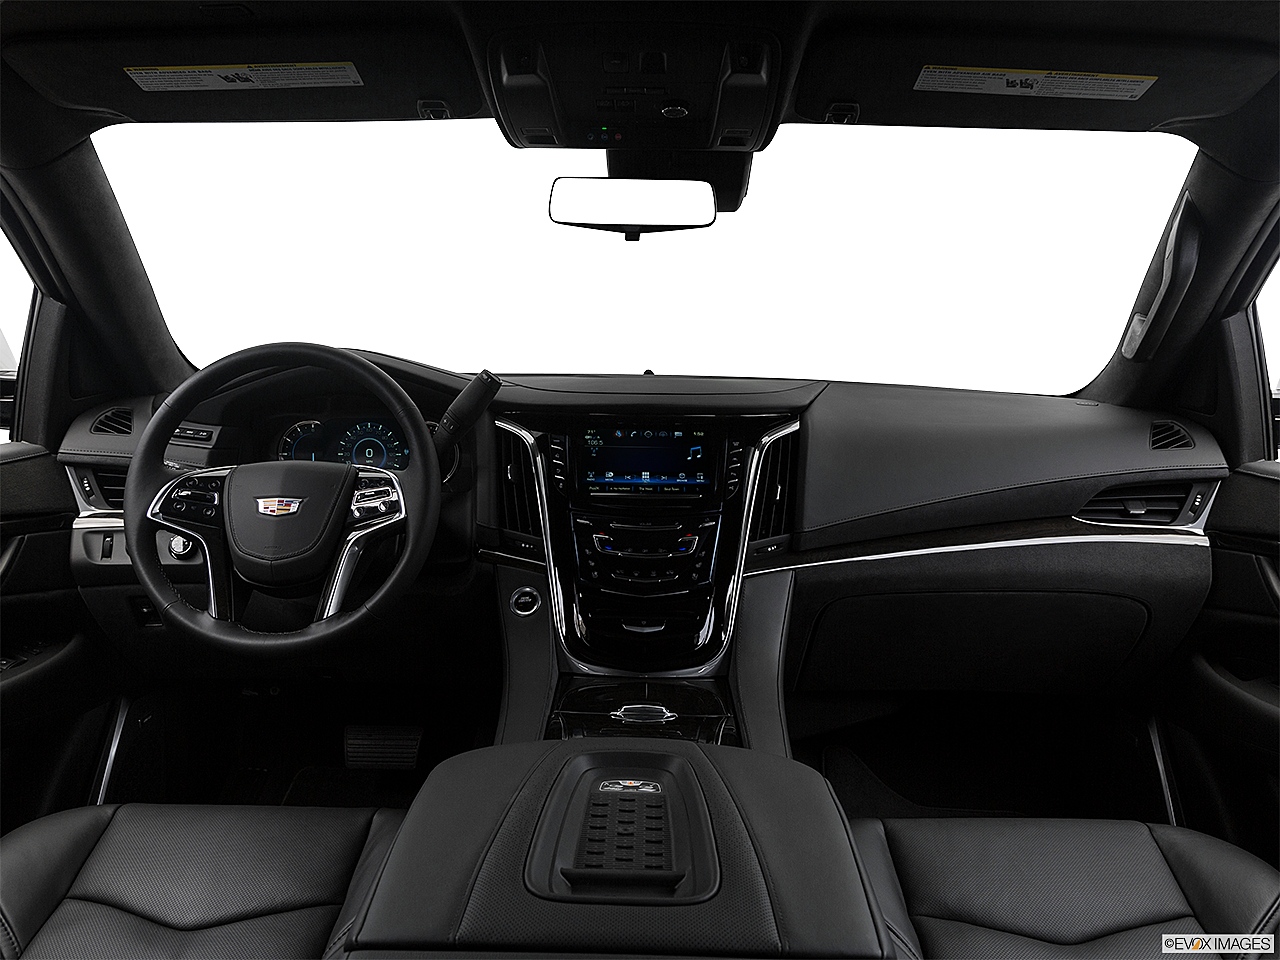 Cadillac Escalade 2017 Interior Floors Doors Interior Design